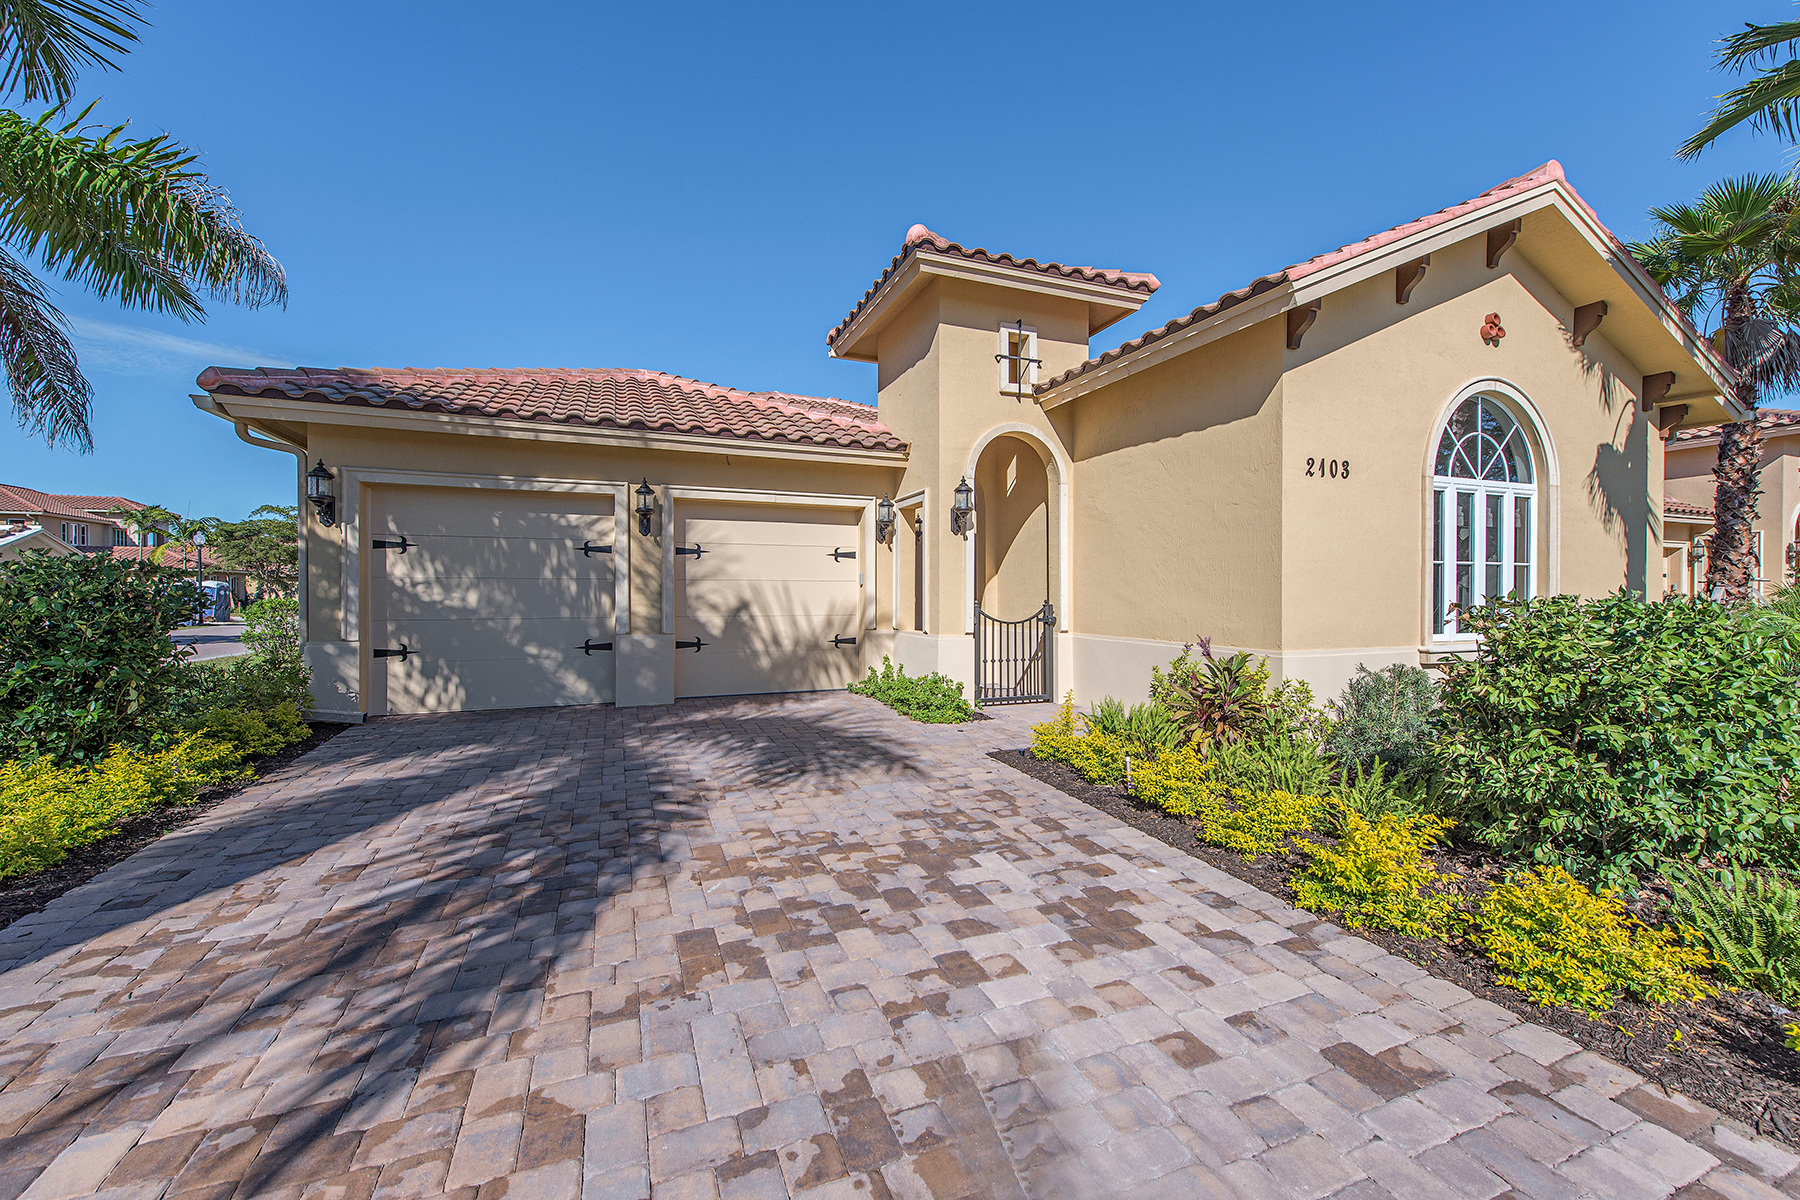 Single Family Home for Sale at 2103 Torino Way , Naples, FL 34105 2103 Torino Way Naples, Florida, 34105 United States